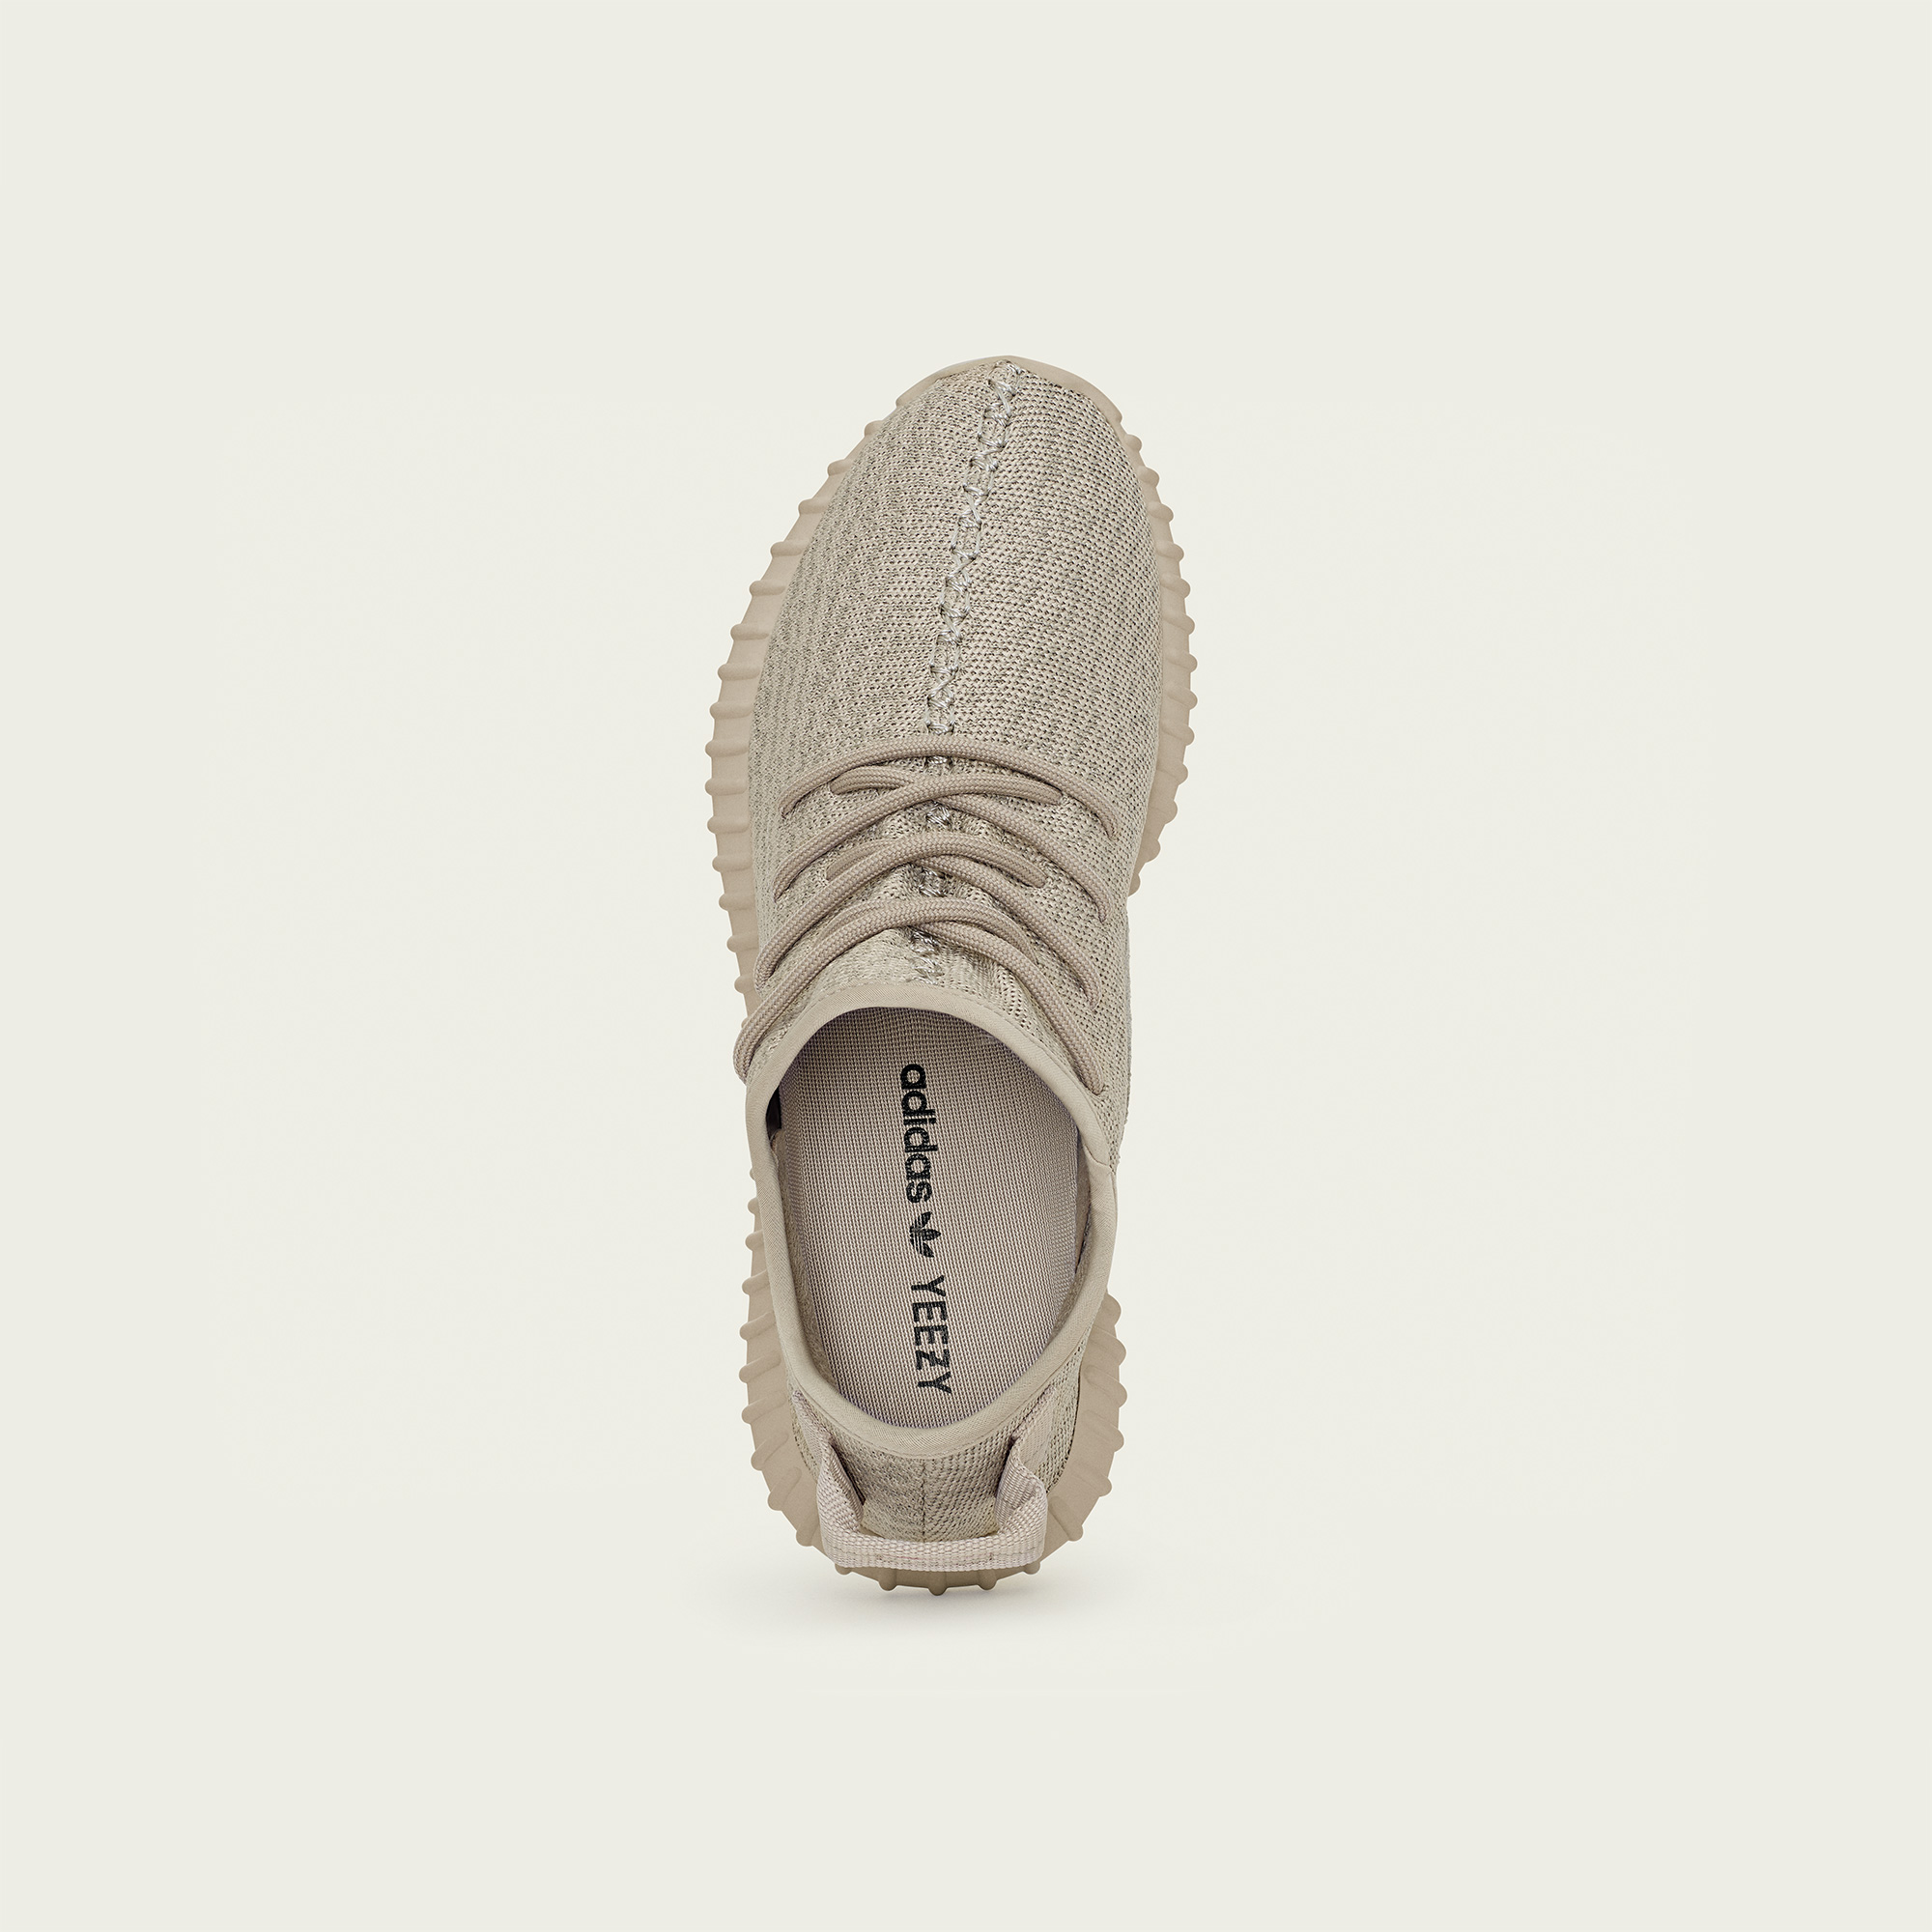 adidas Yeezy 350 Boost Oxford Tan top view